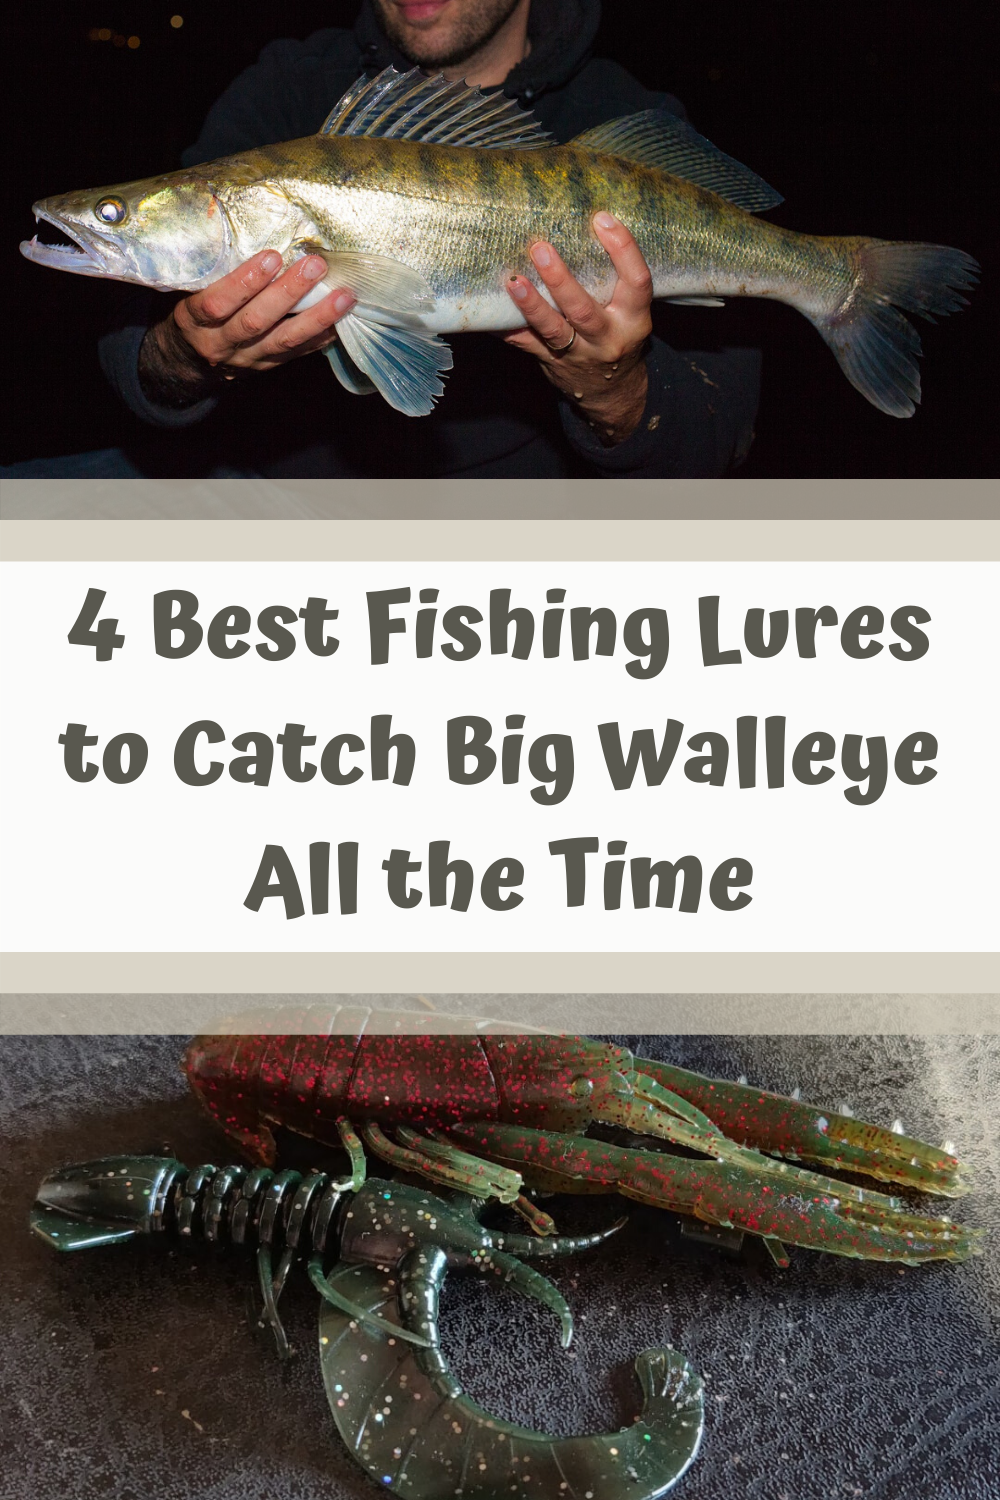 4 Best Fishing Lures To Catch Big Walleye All The Time In 2020 Best Fishing Lures Best Fishing Fishing Lures